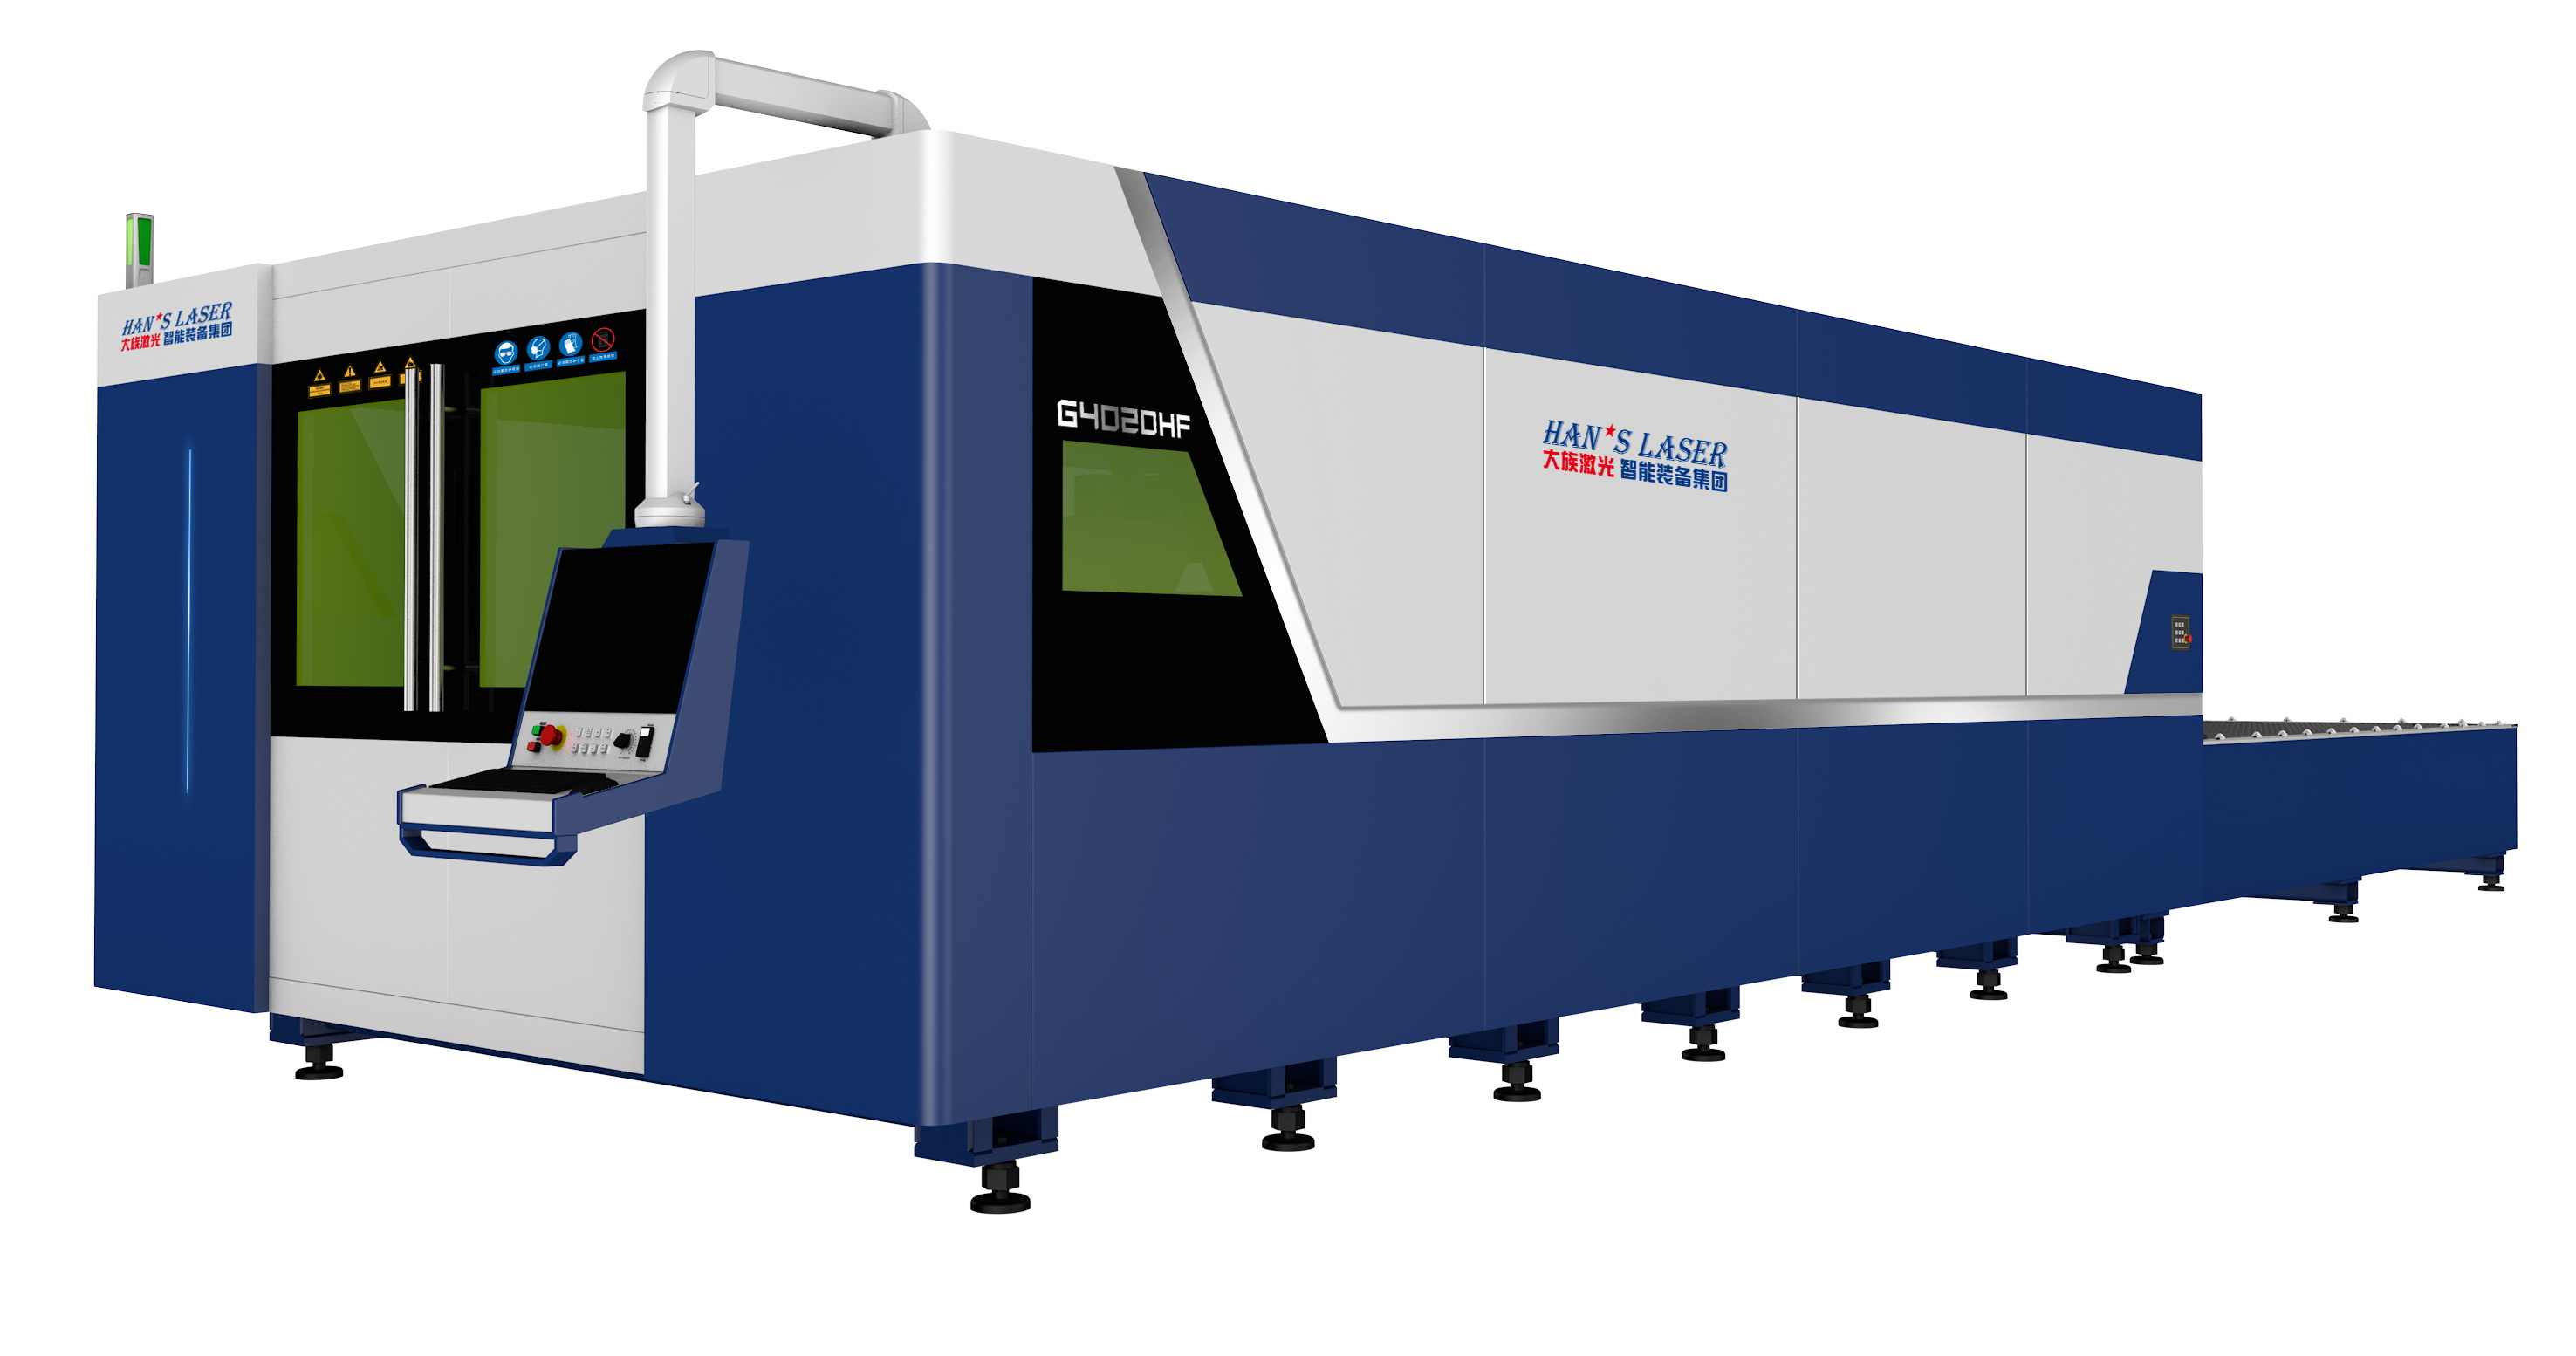 Neh High-speed High power fiber laser